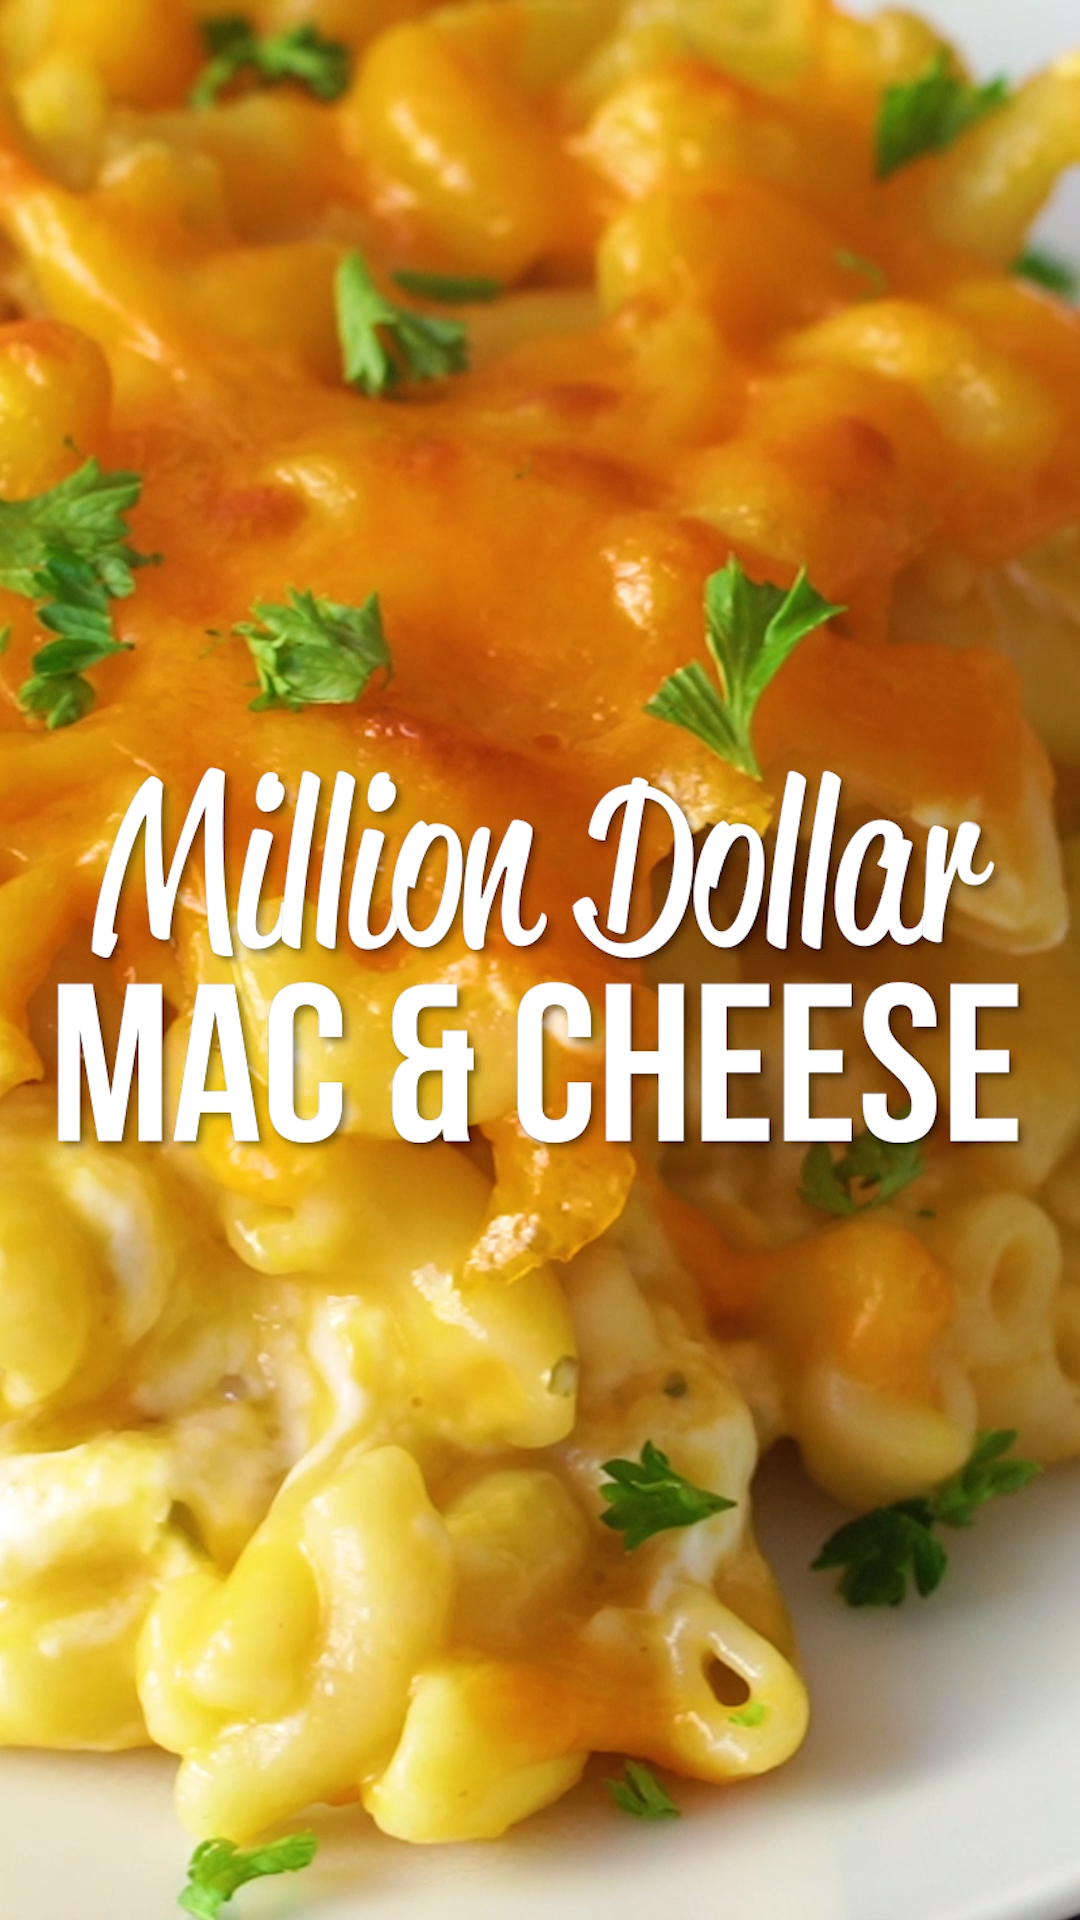 Million Dollar Mac & Cheese - the creamiest and dreamiest mac and cheese EVERRRR!!! This is the mos